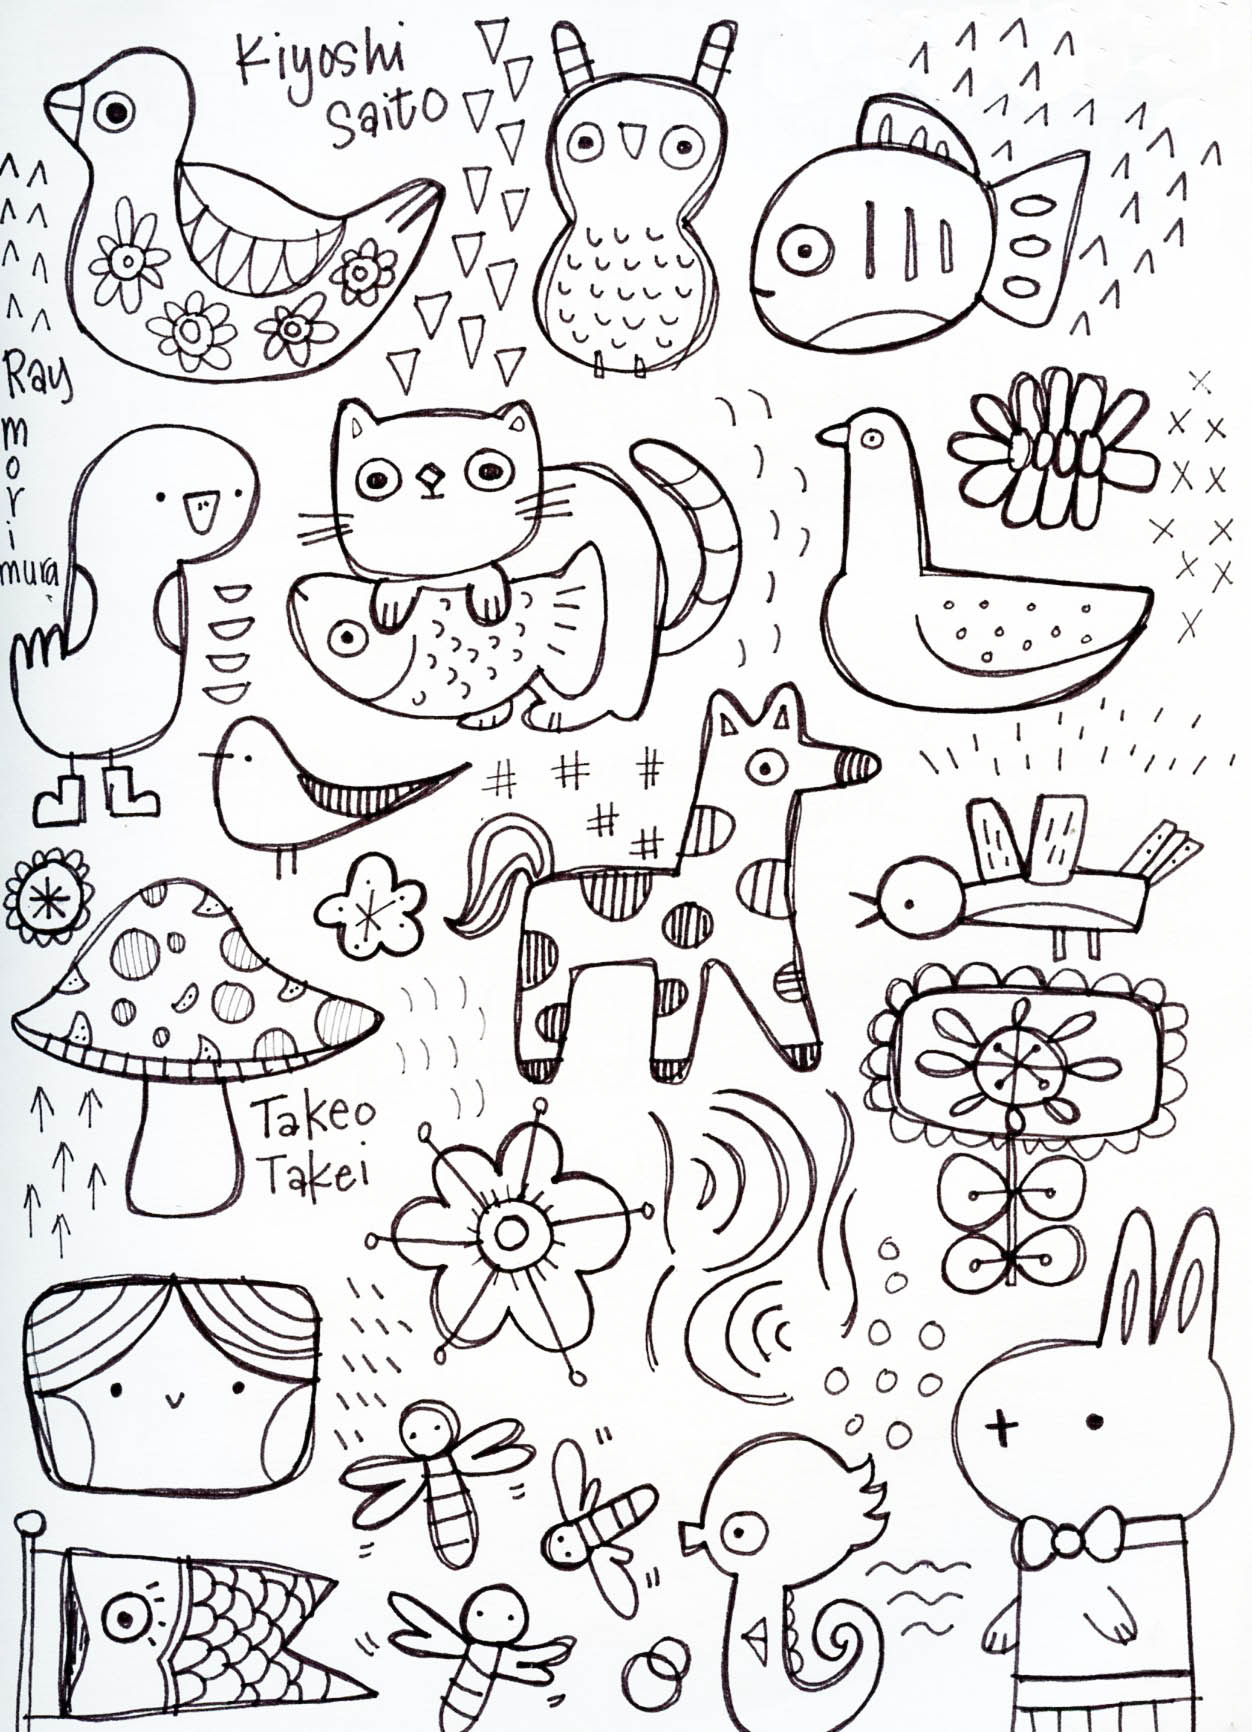 My Toys Coloring Pages